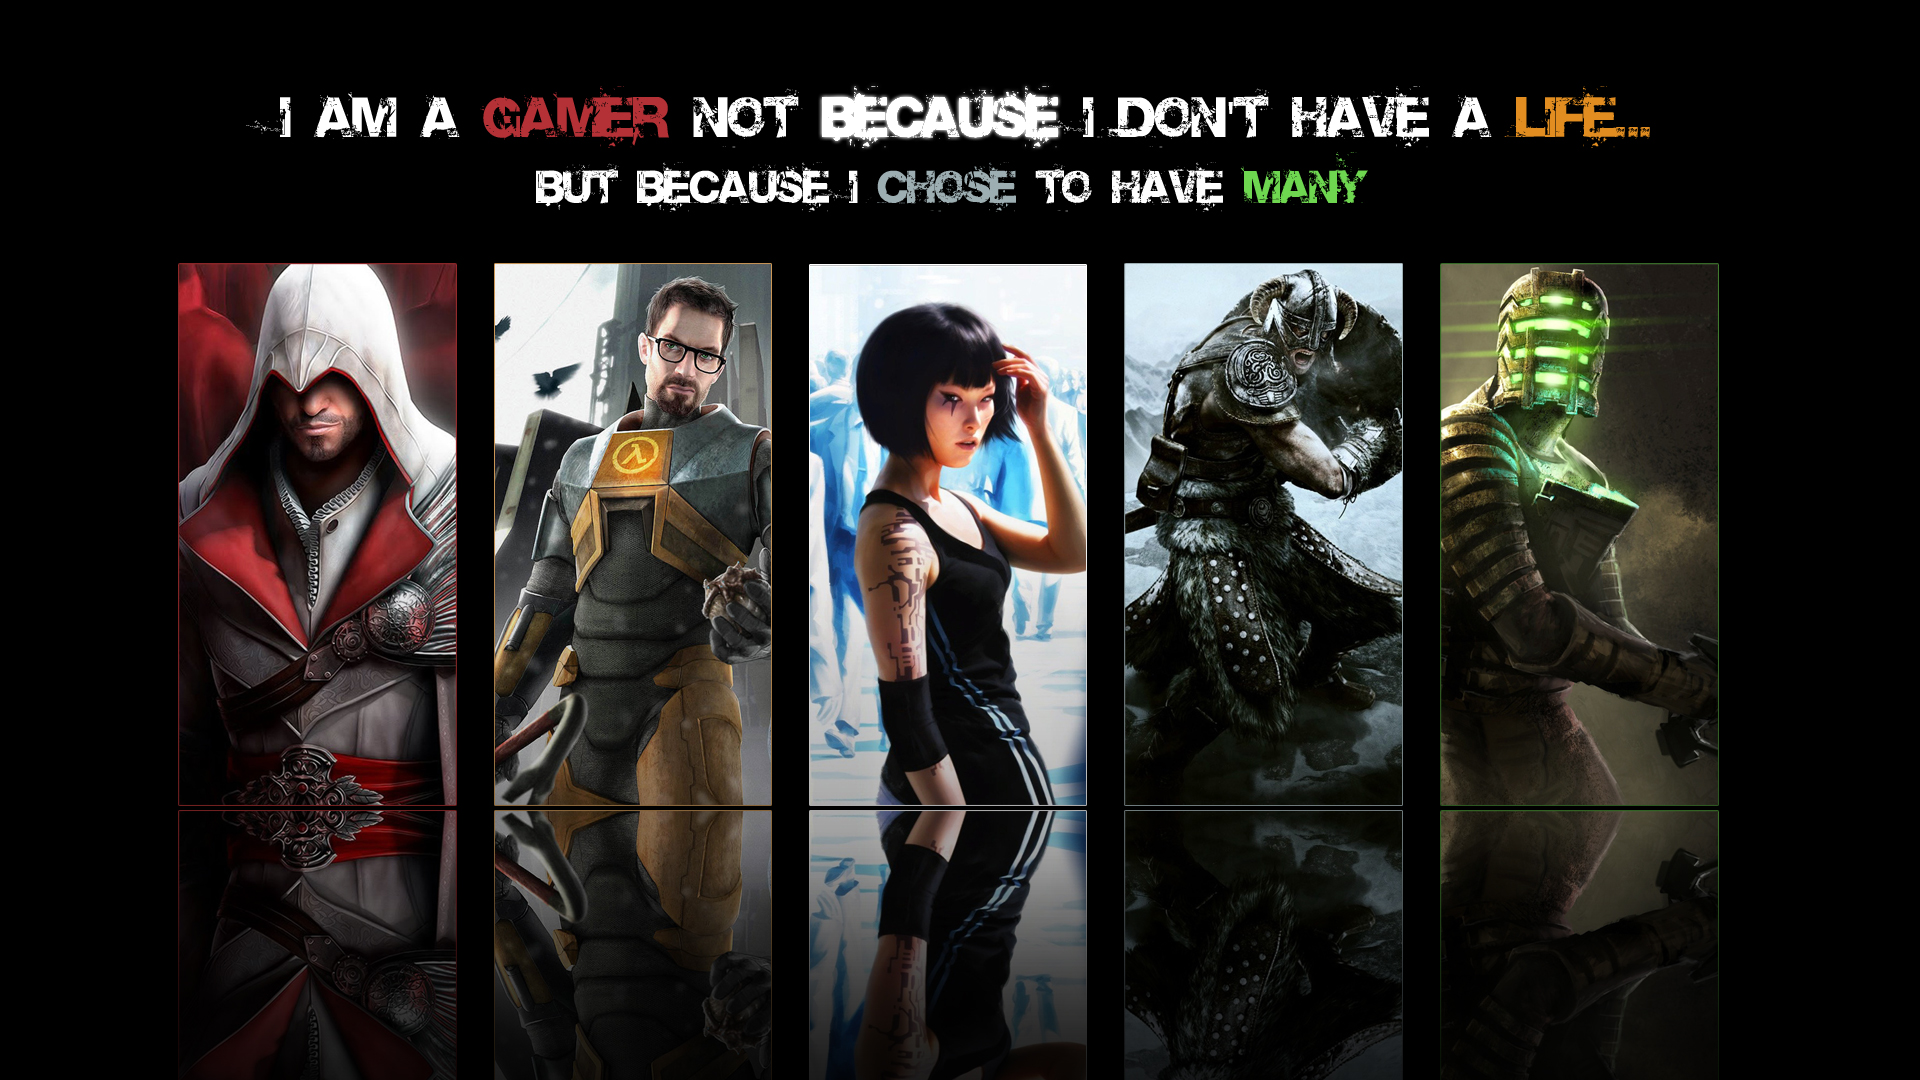 Gamers dating non-gamers